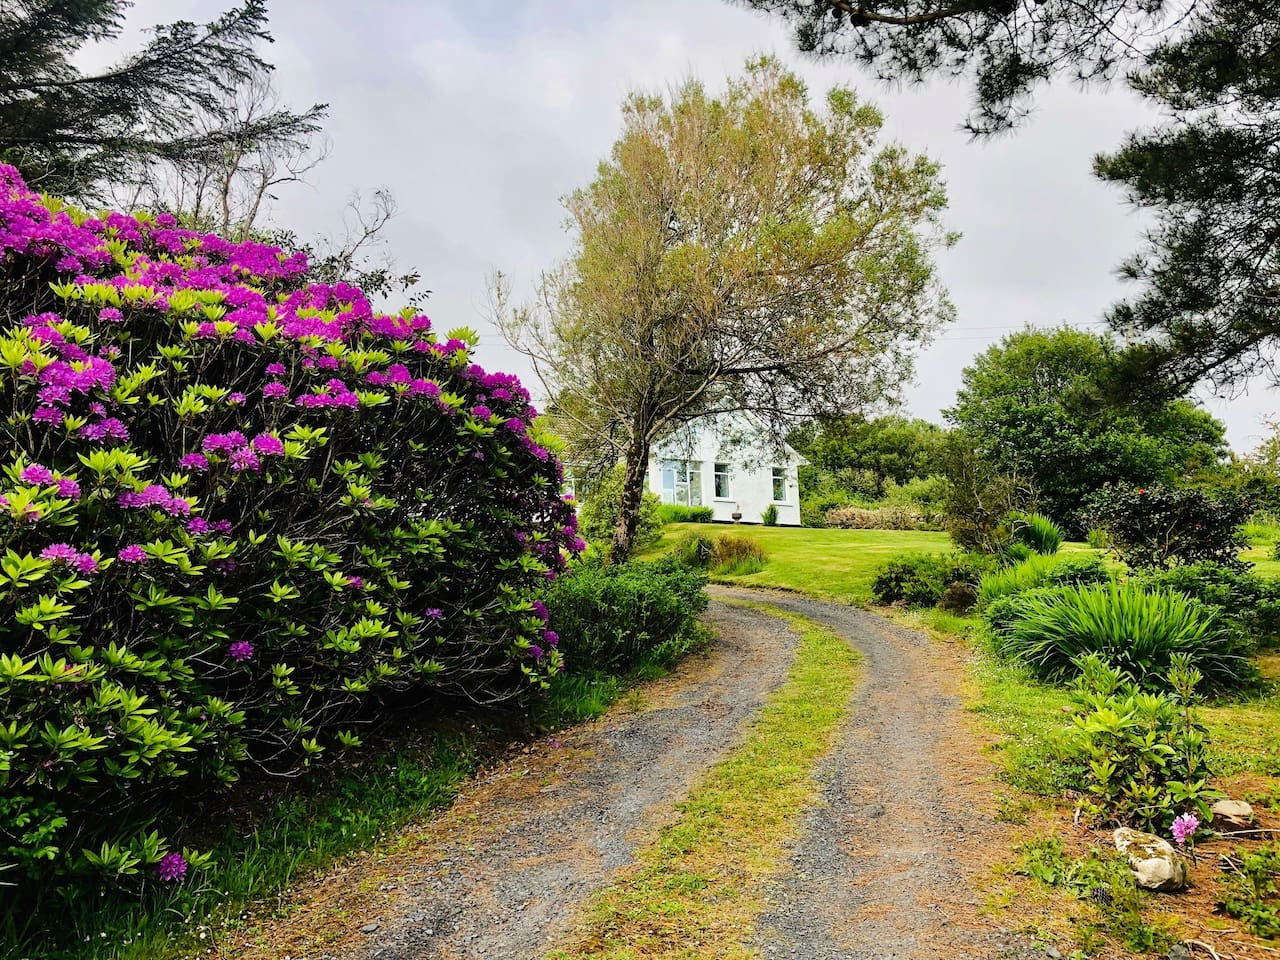 Nicely secluded in a mature garden